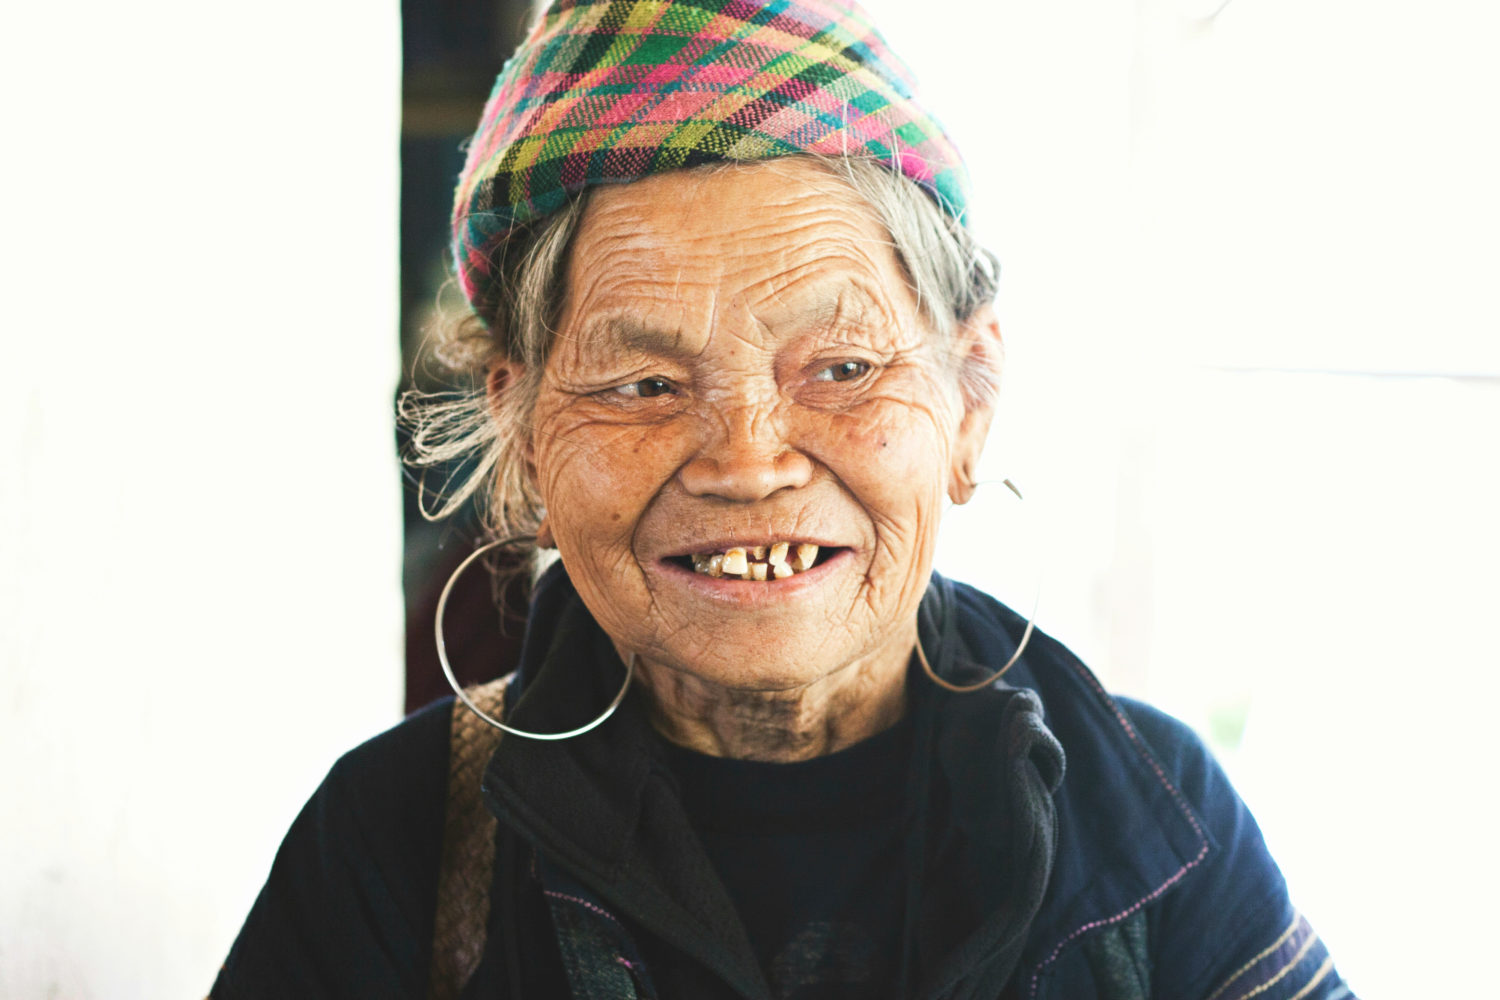 Sa Pa woman in Vietnam